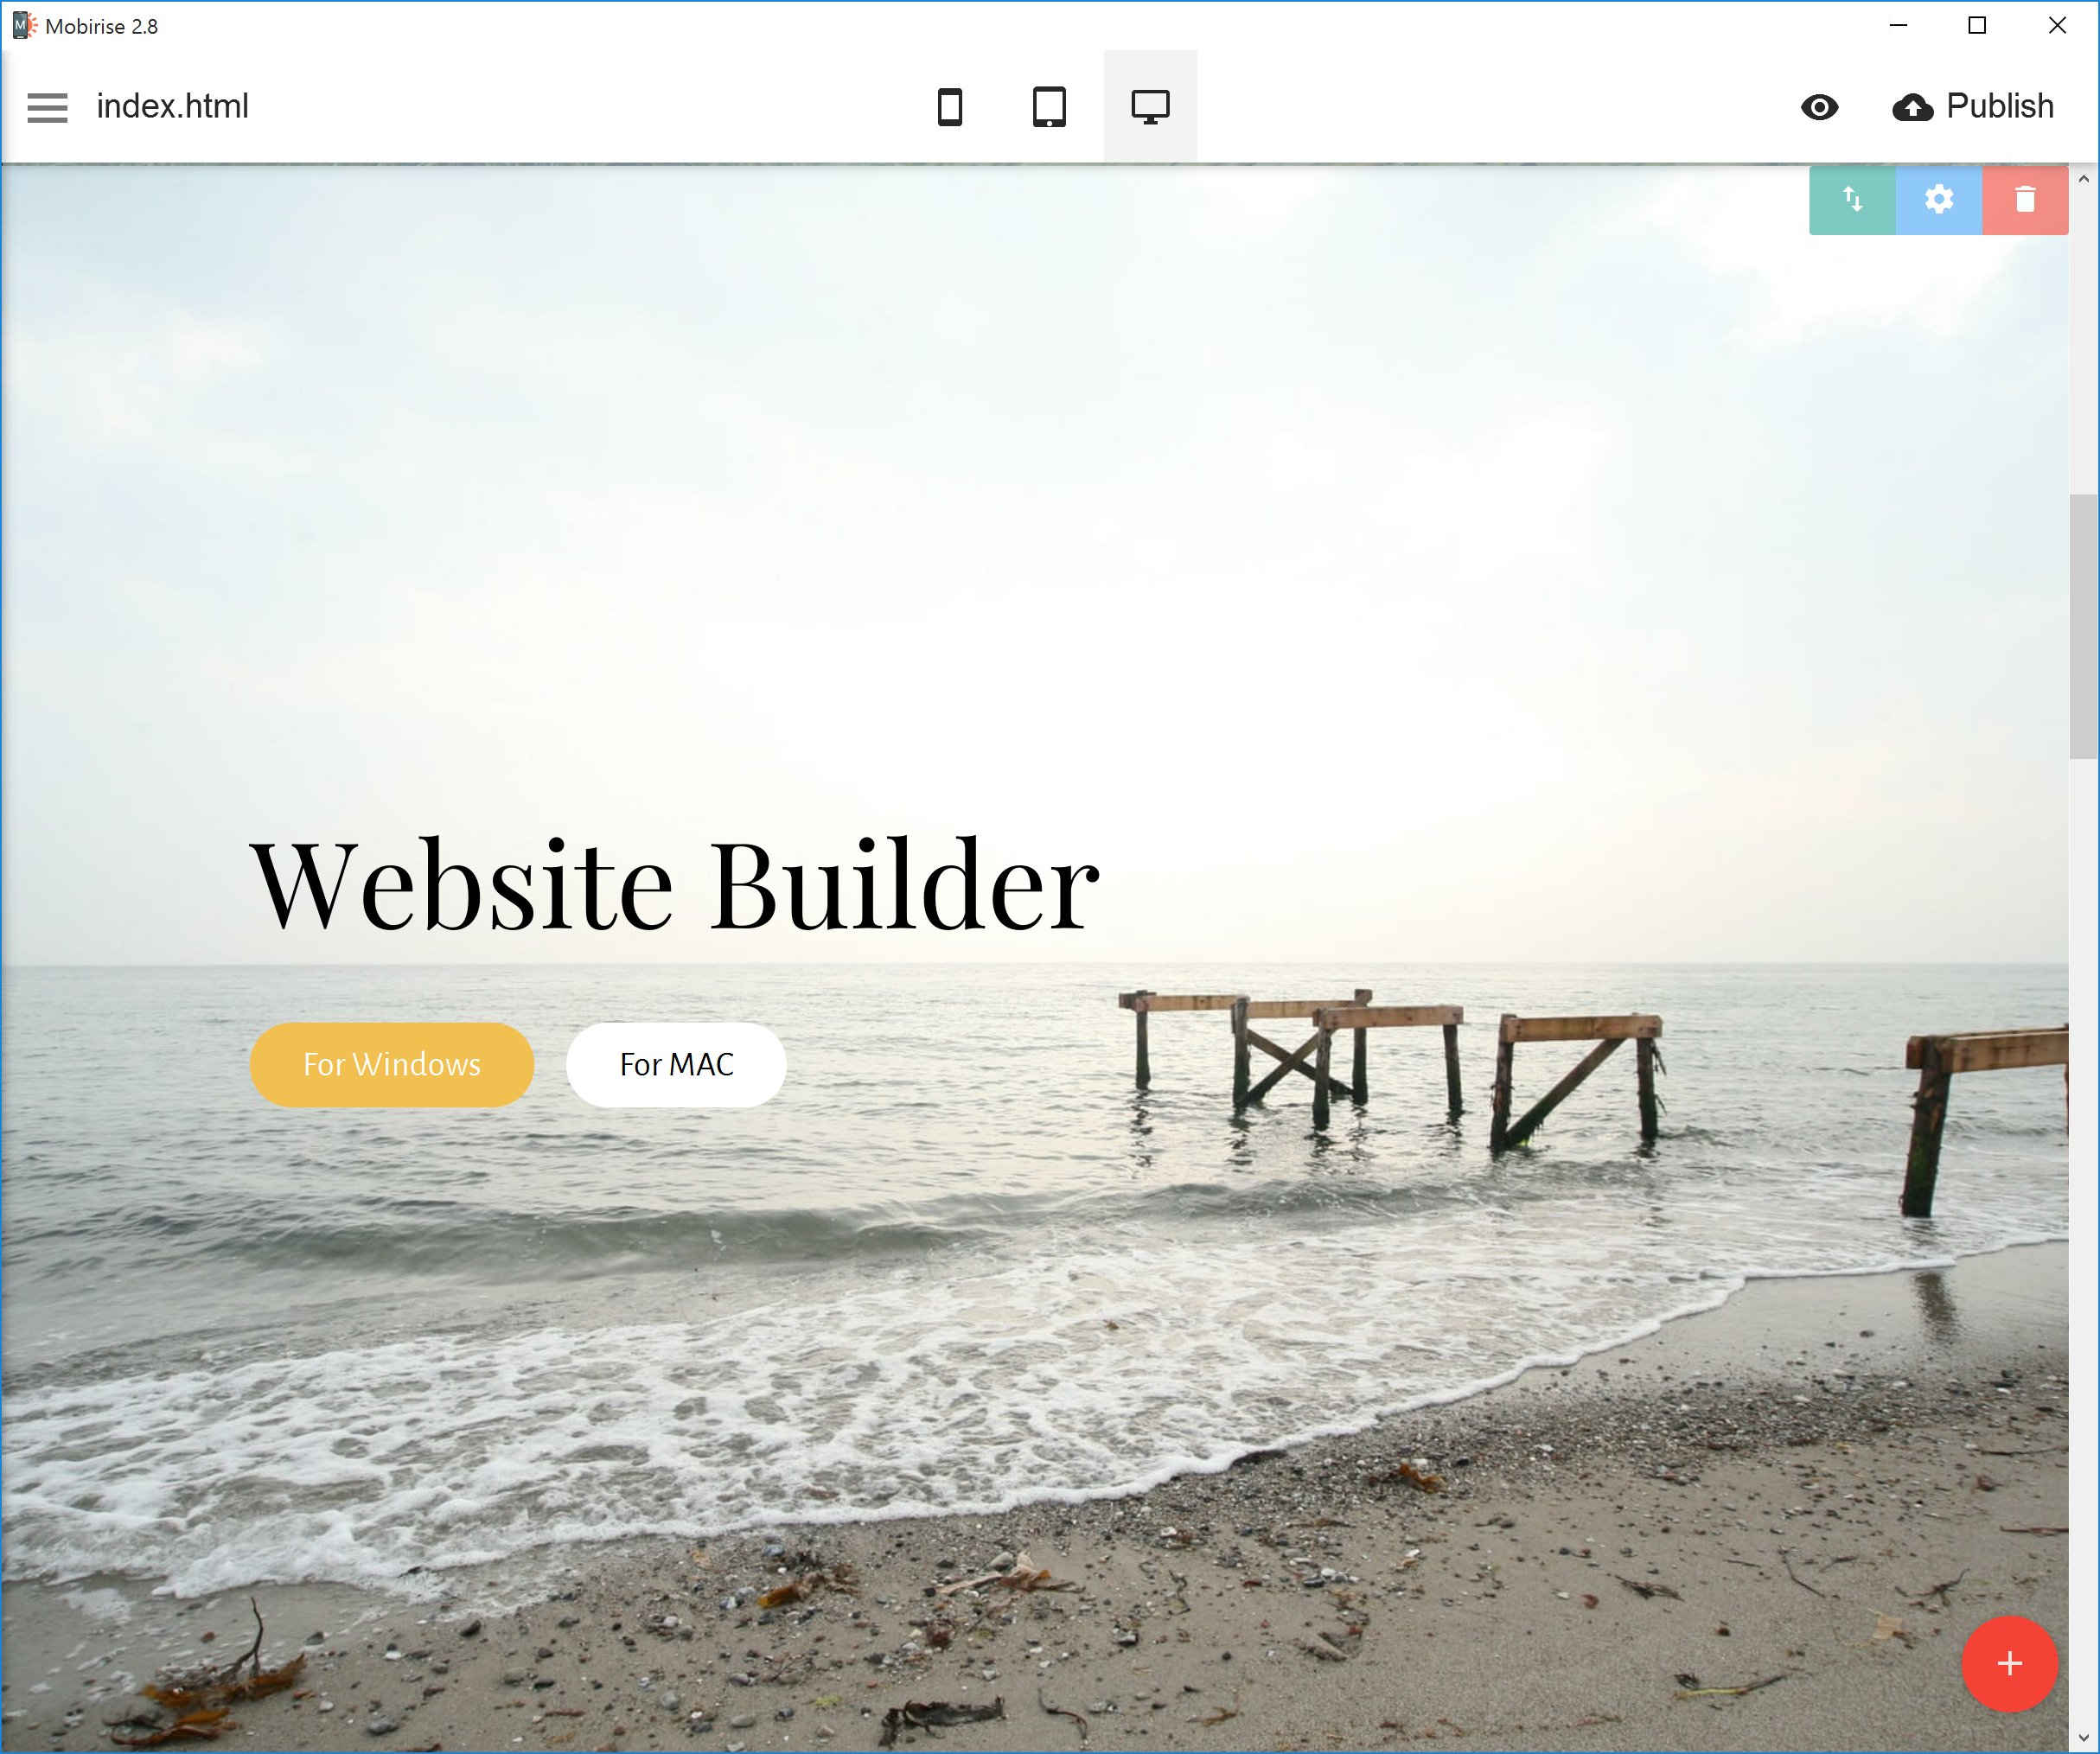 How to Create Your Own Site in HTML5